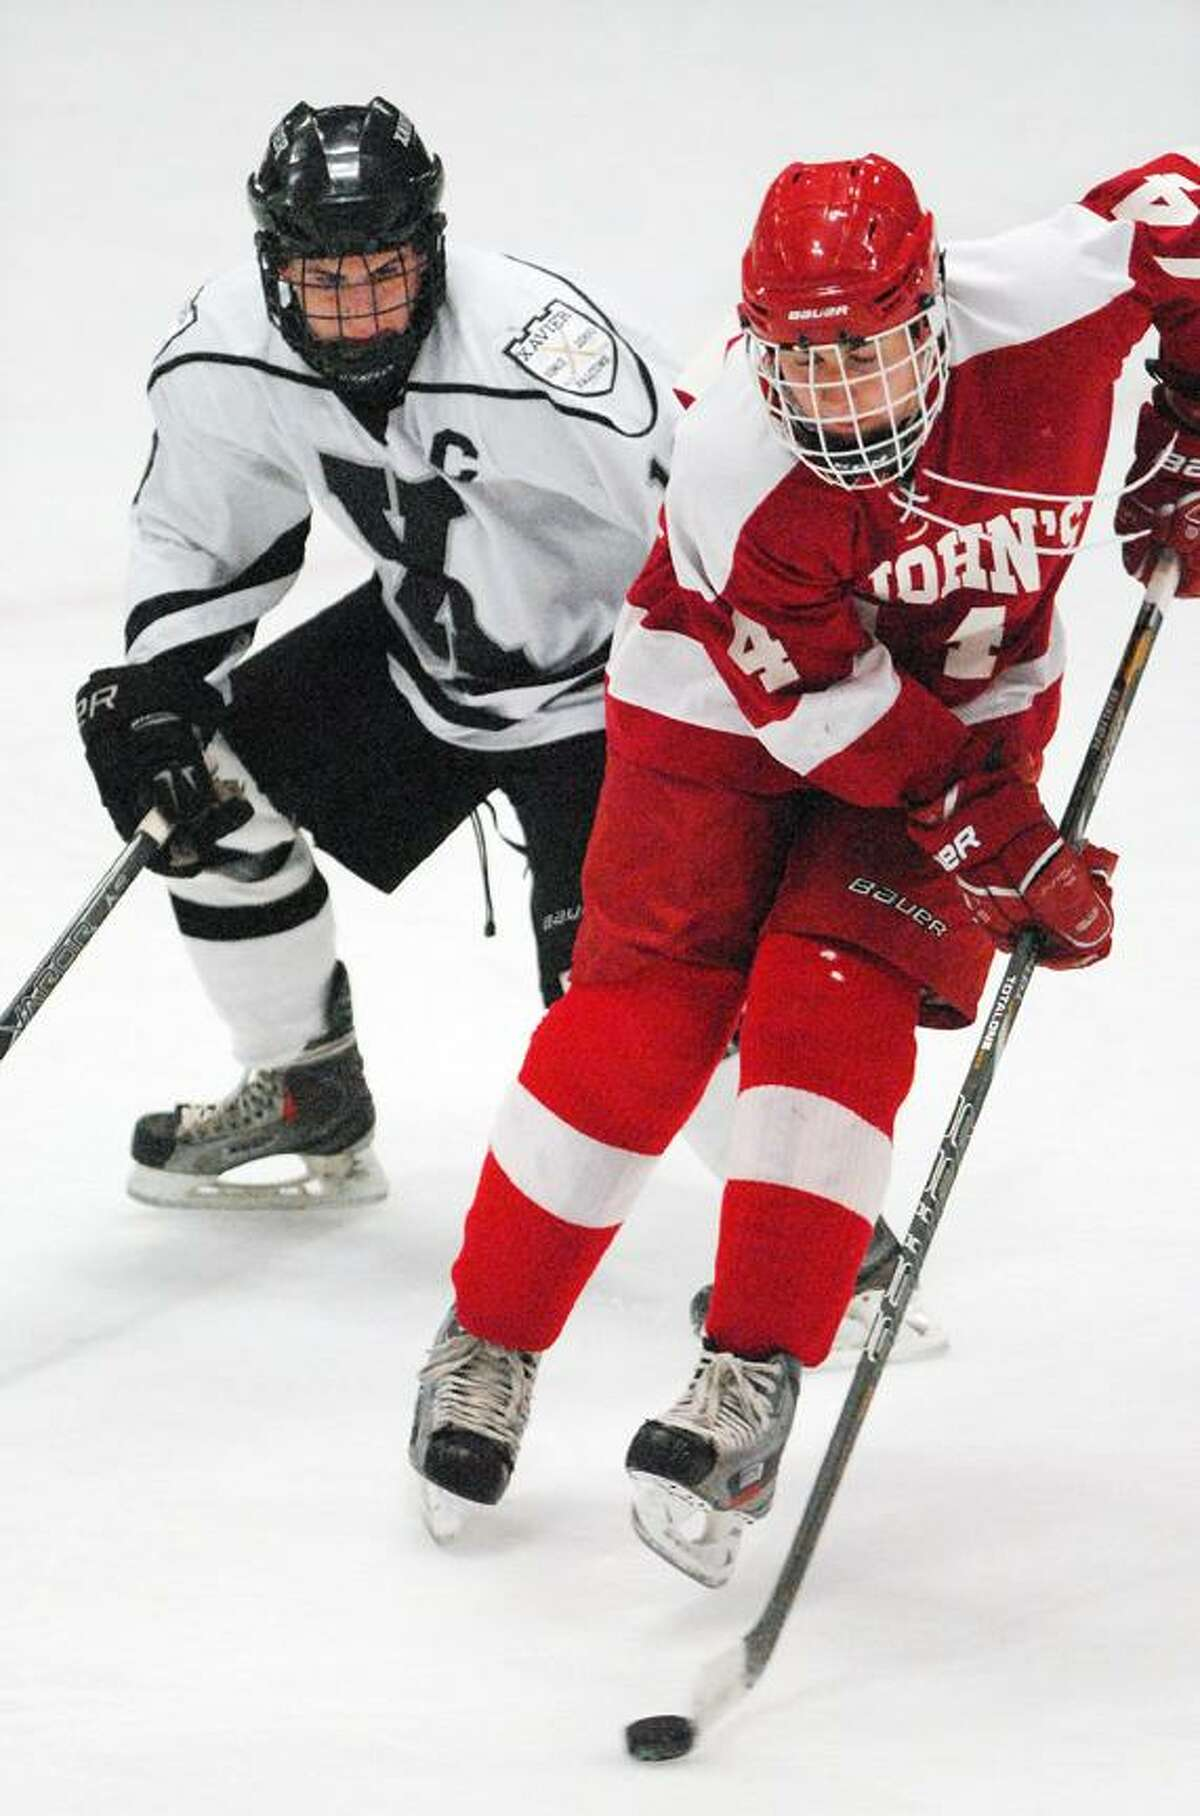 Catherine Avalone/The Middletown Press Xavier senior co-captain Dan Dupont defends Hunter Burdick of St. John's-Shrewsbury, Mass. Wednesday evening at Wesleyan's Spurrier-Snyder Rink. The Pioneers defeated the Falcons 3-1.